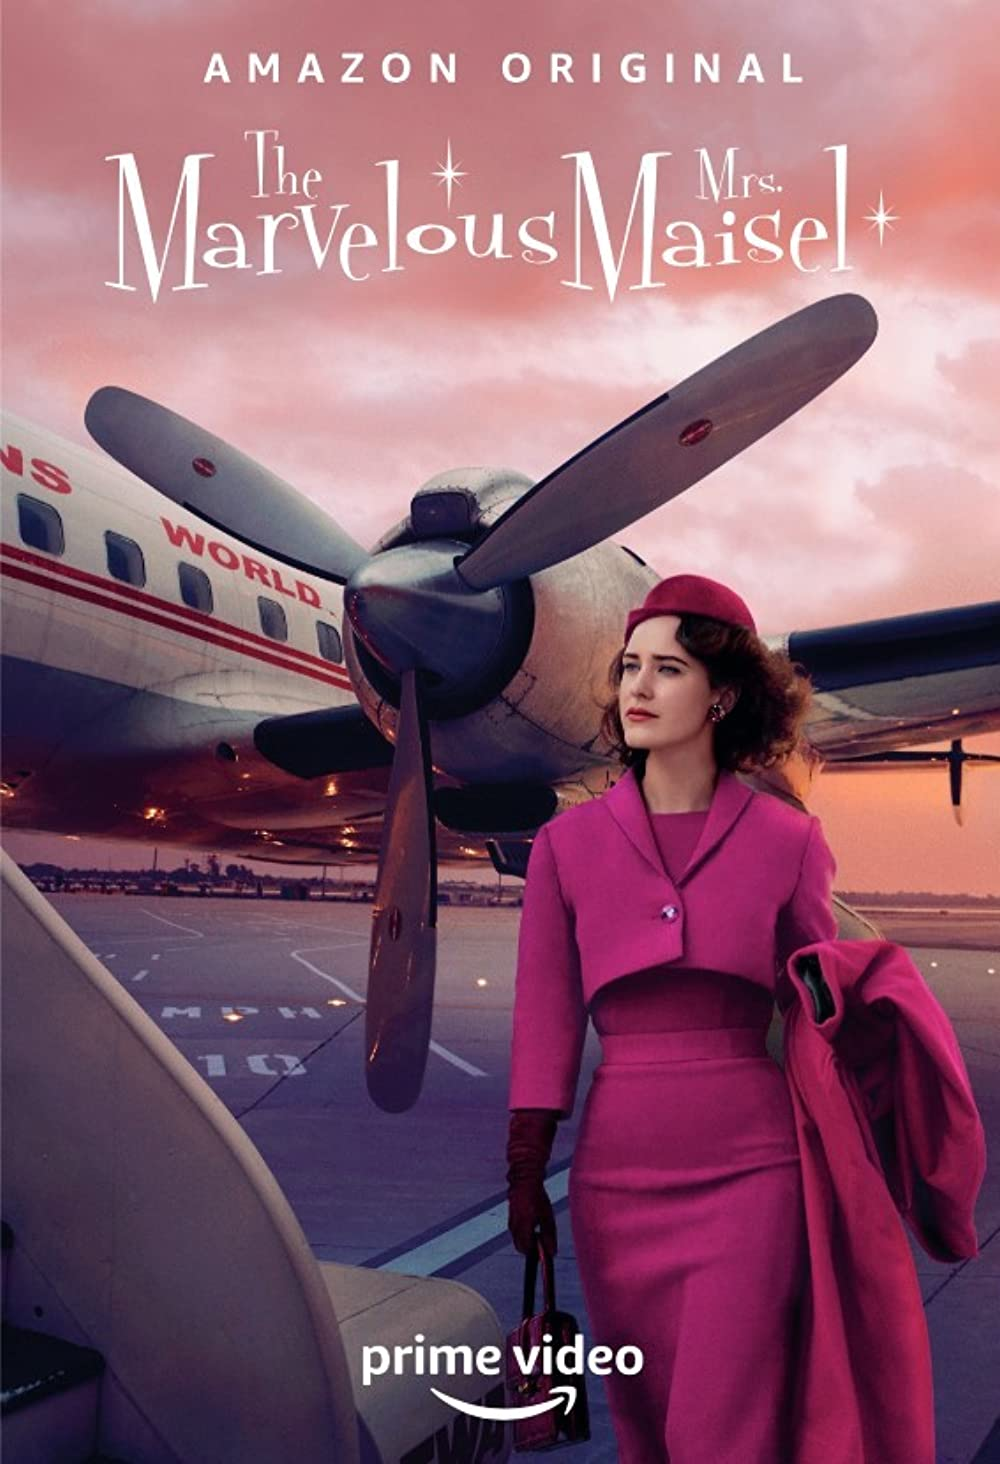 The Marvelous Mrs. Maisel: Created by Amy Sherman-Palladino. With Rachel Brosnahan, Alex Borstein, Michael Zegen, Marin Hinkle. A housewife in 1958 decides to become a stand-up comic.